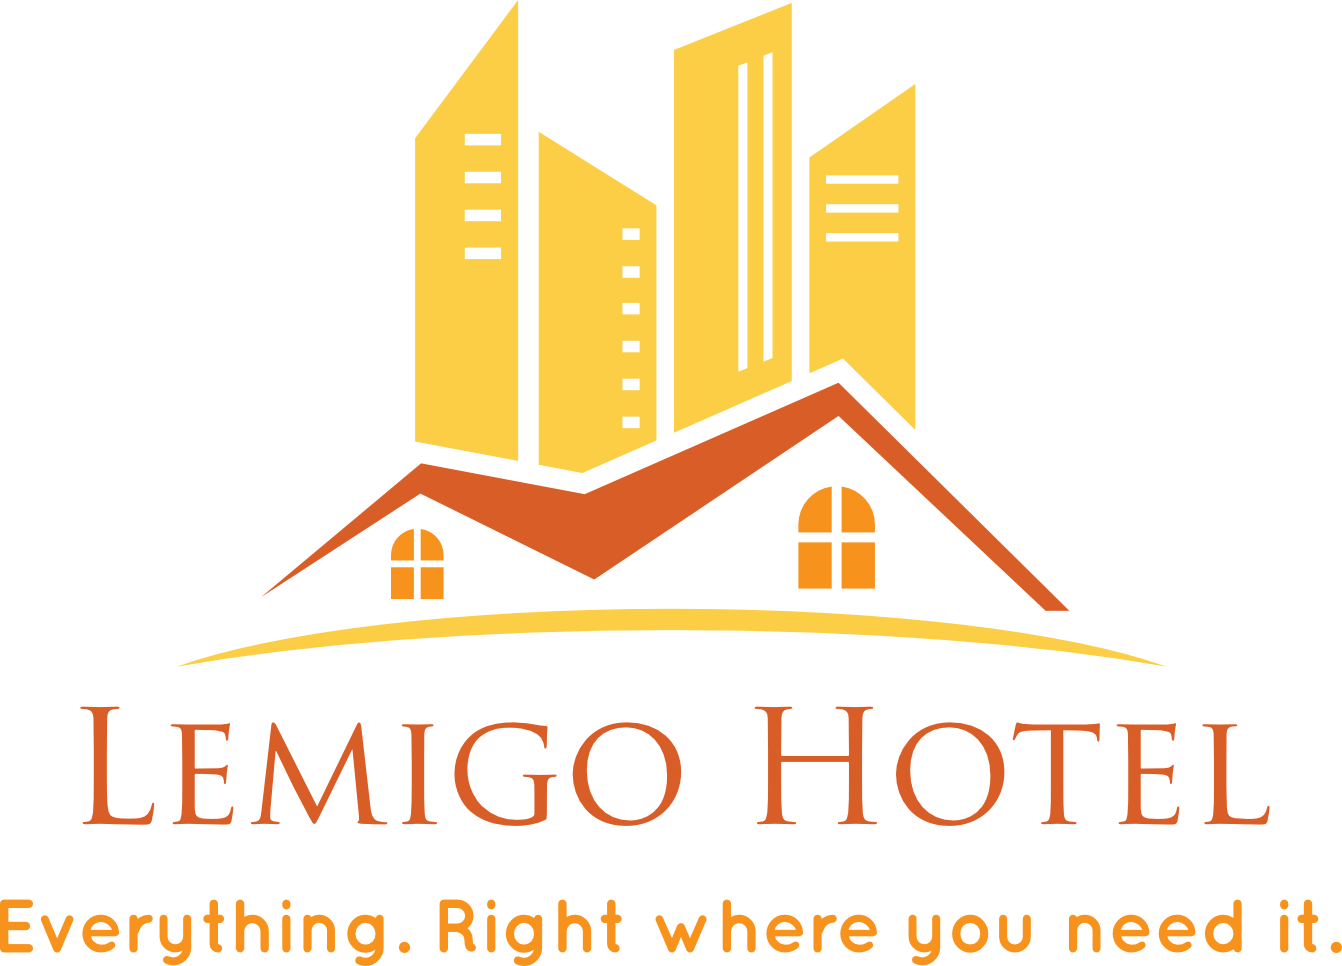 Hotel Logo Png | www.pixshark.com - Images Galleries With ...